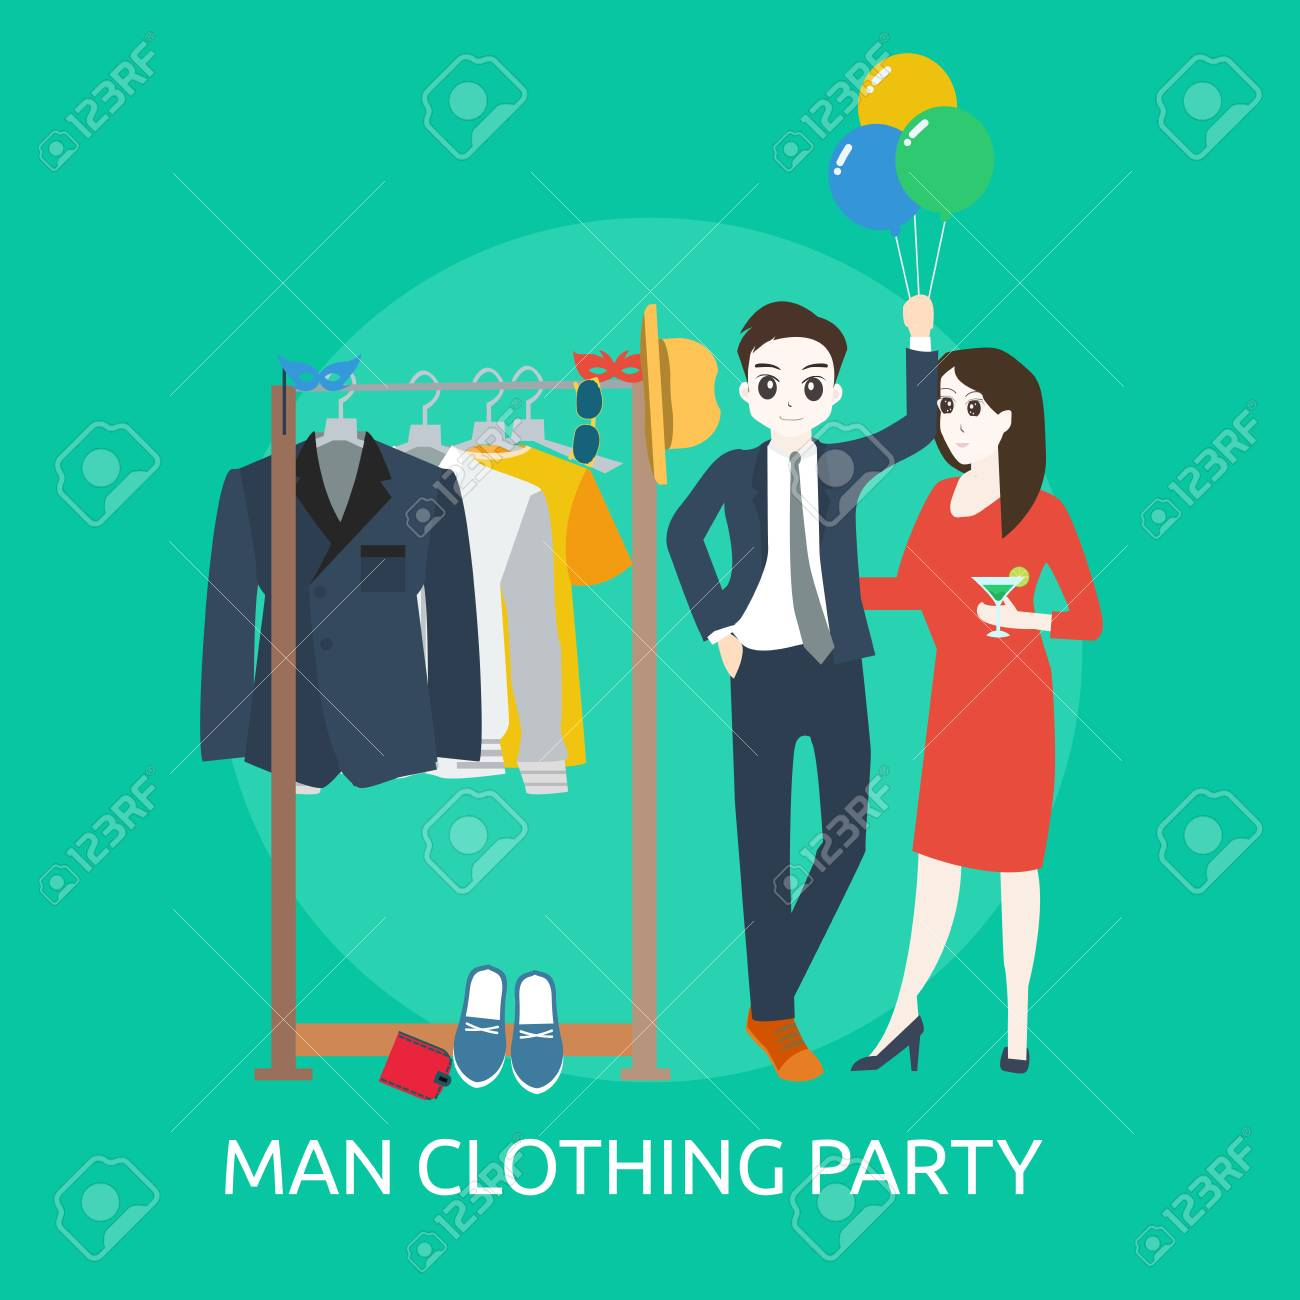 Man Clothing Party Poster Template Vector Illustration Royalty Free